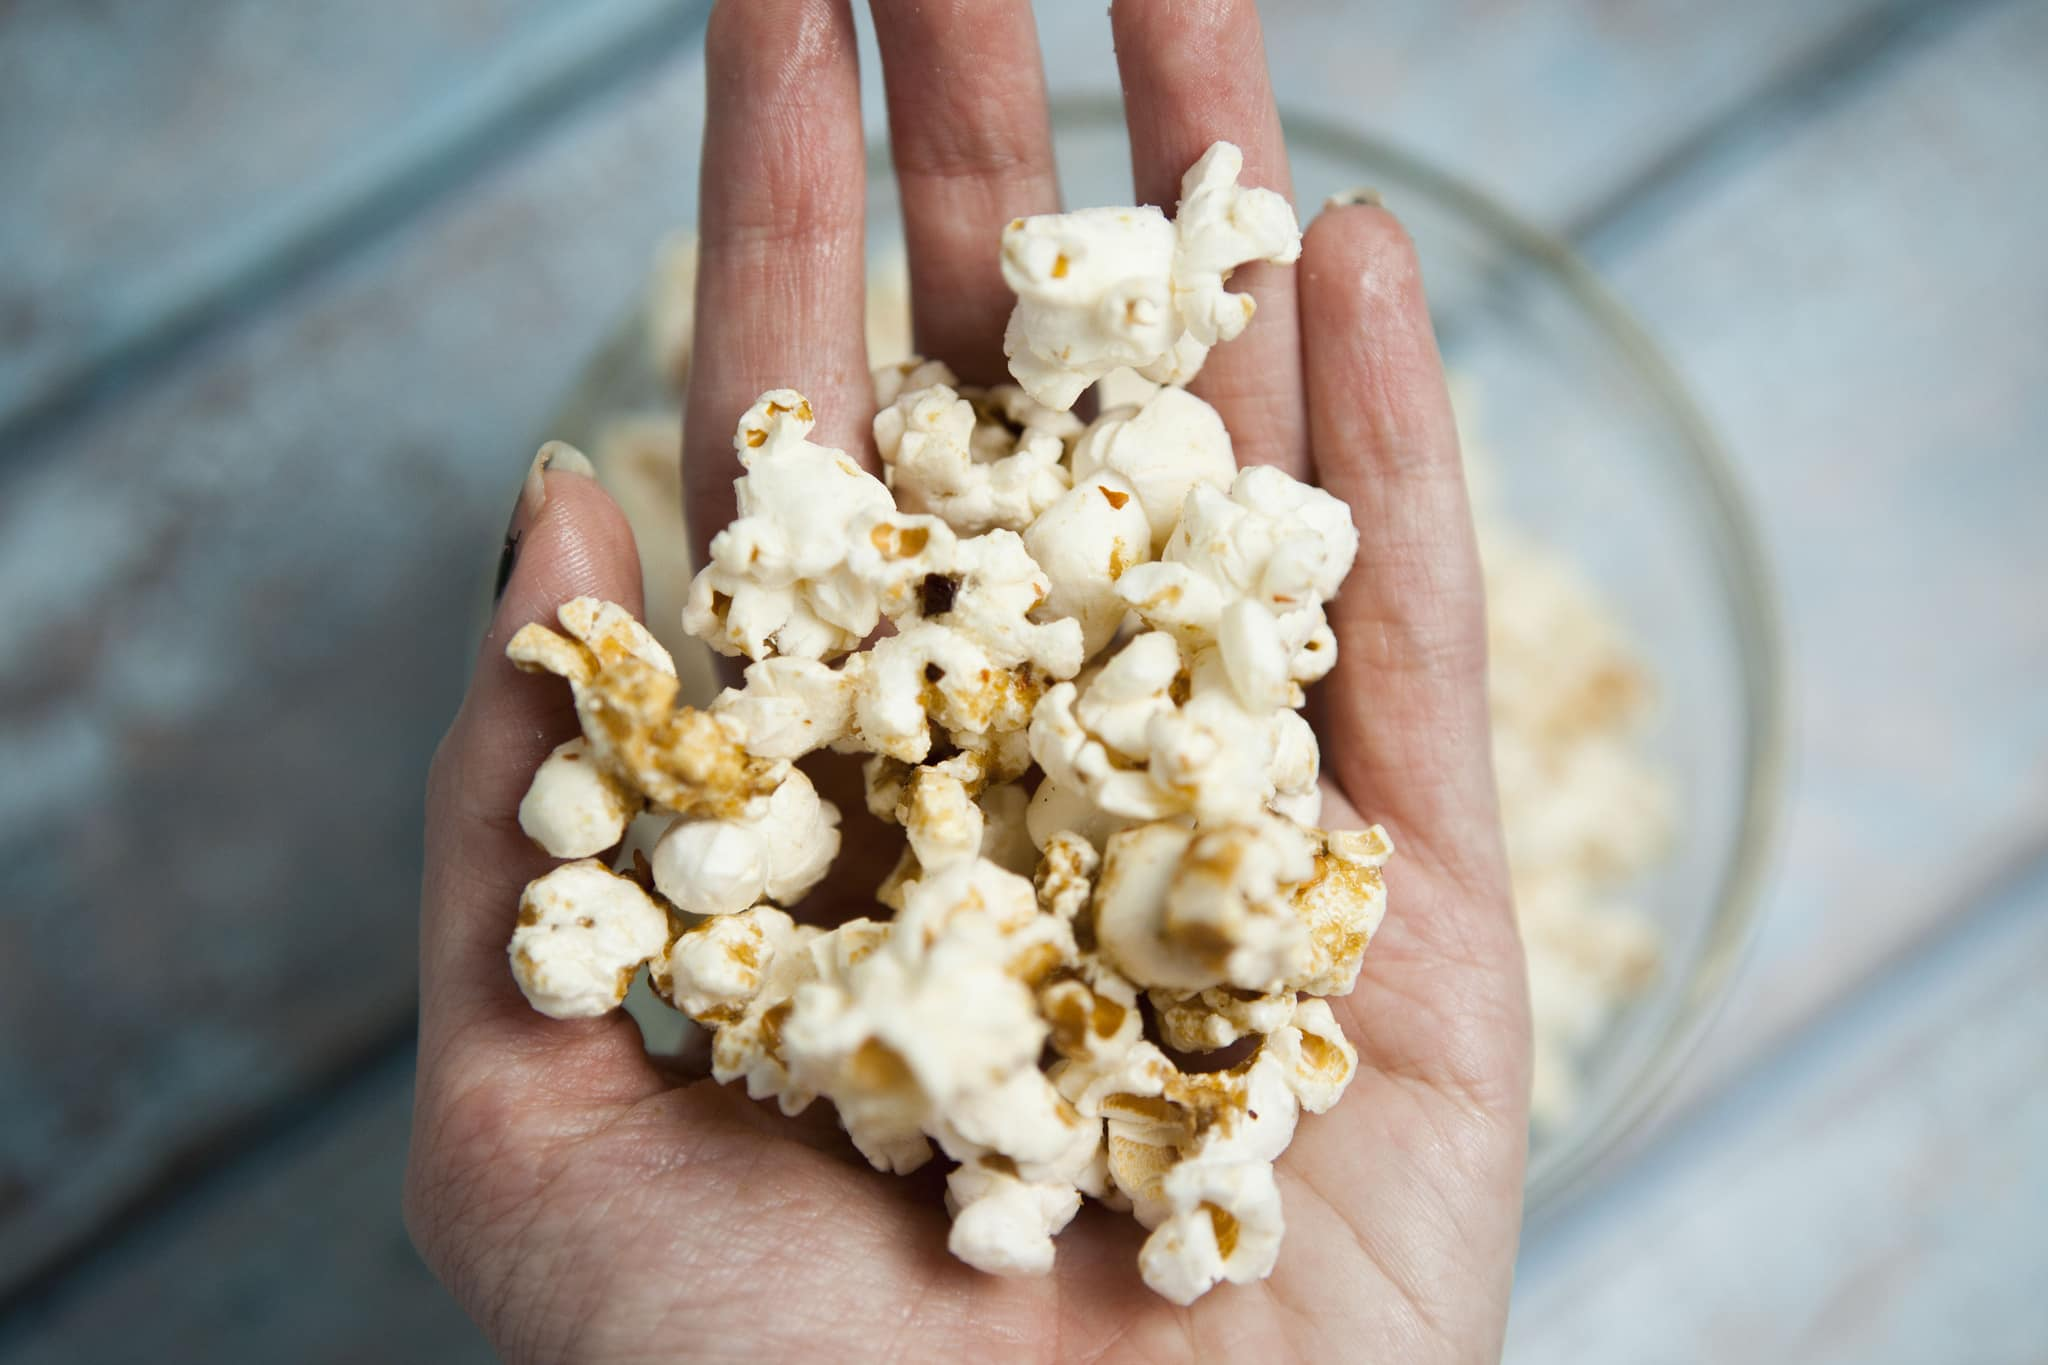 Easy to make Wasabi Popcorn recipe. This healthy snack is only 31 calories per cup! I love to eat this when I'm watching TV on the couch!